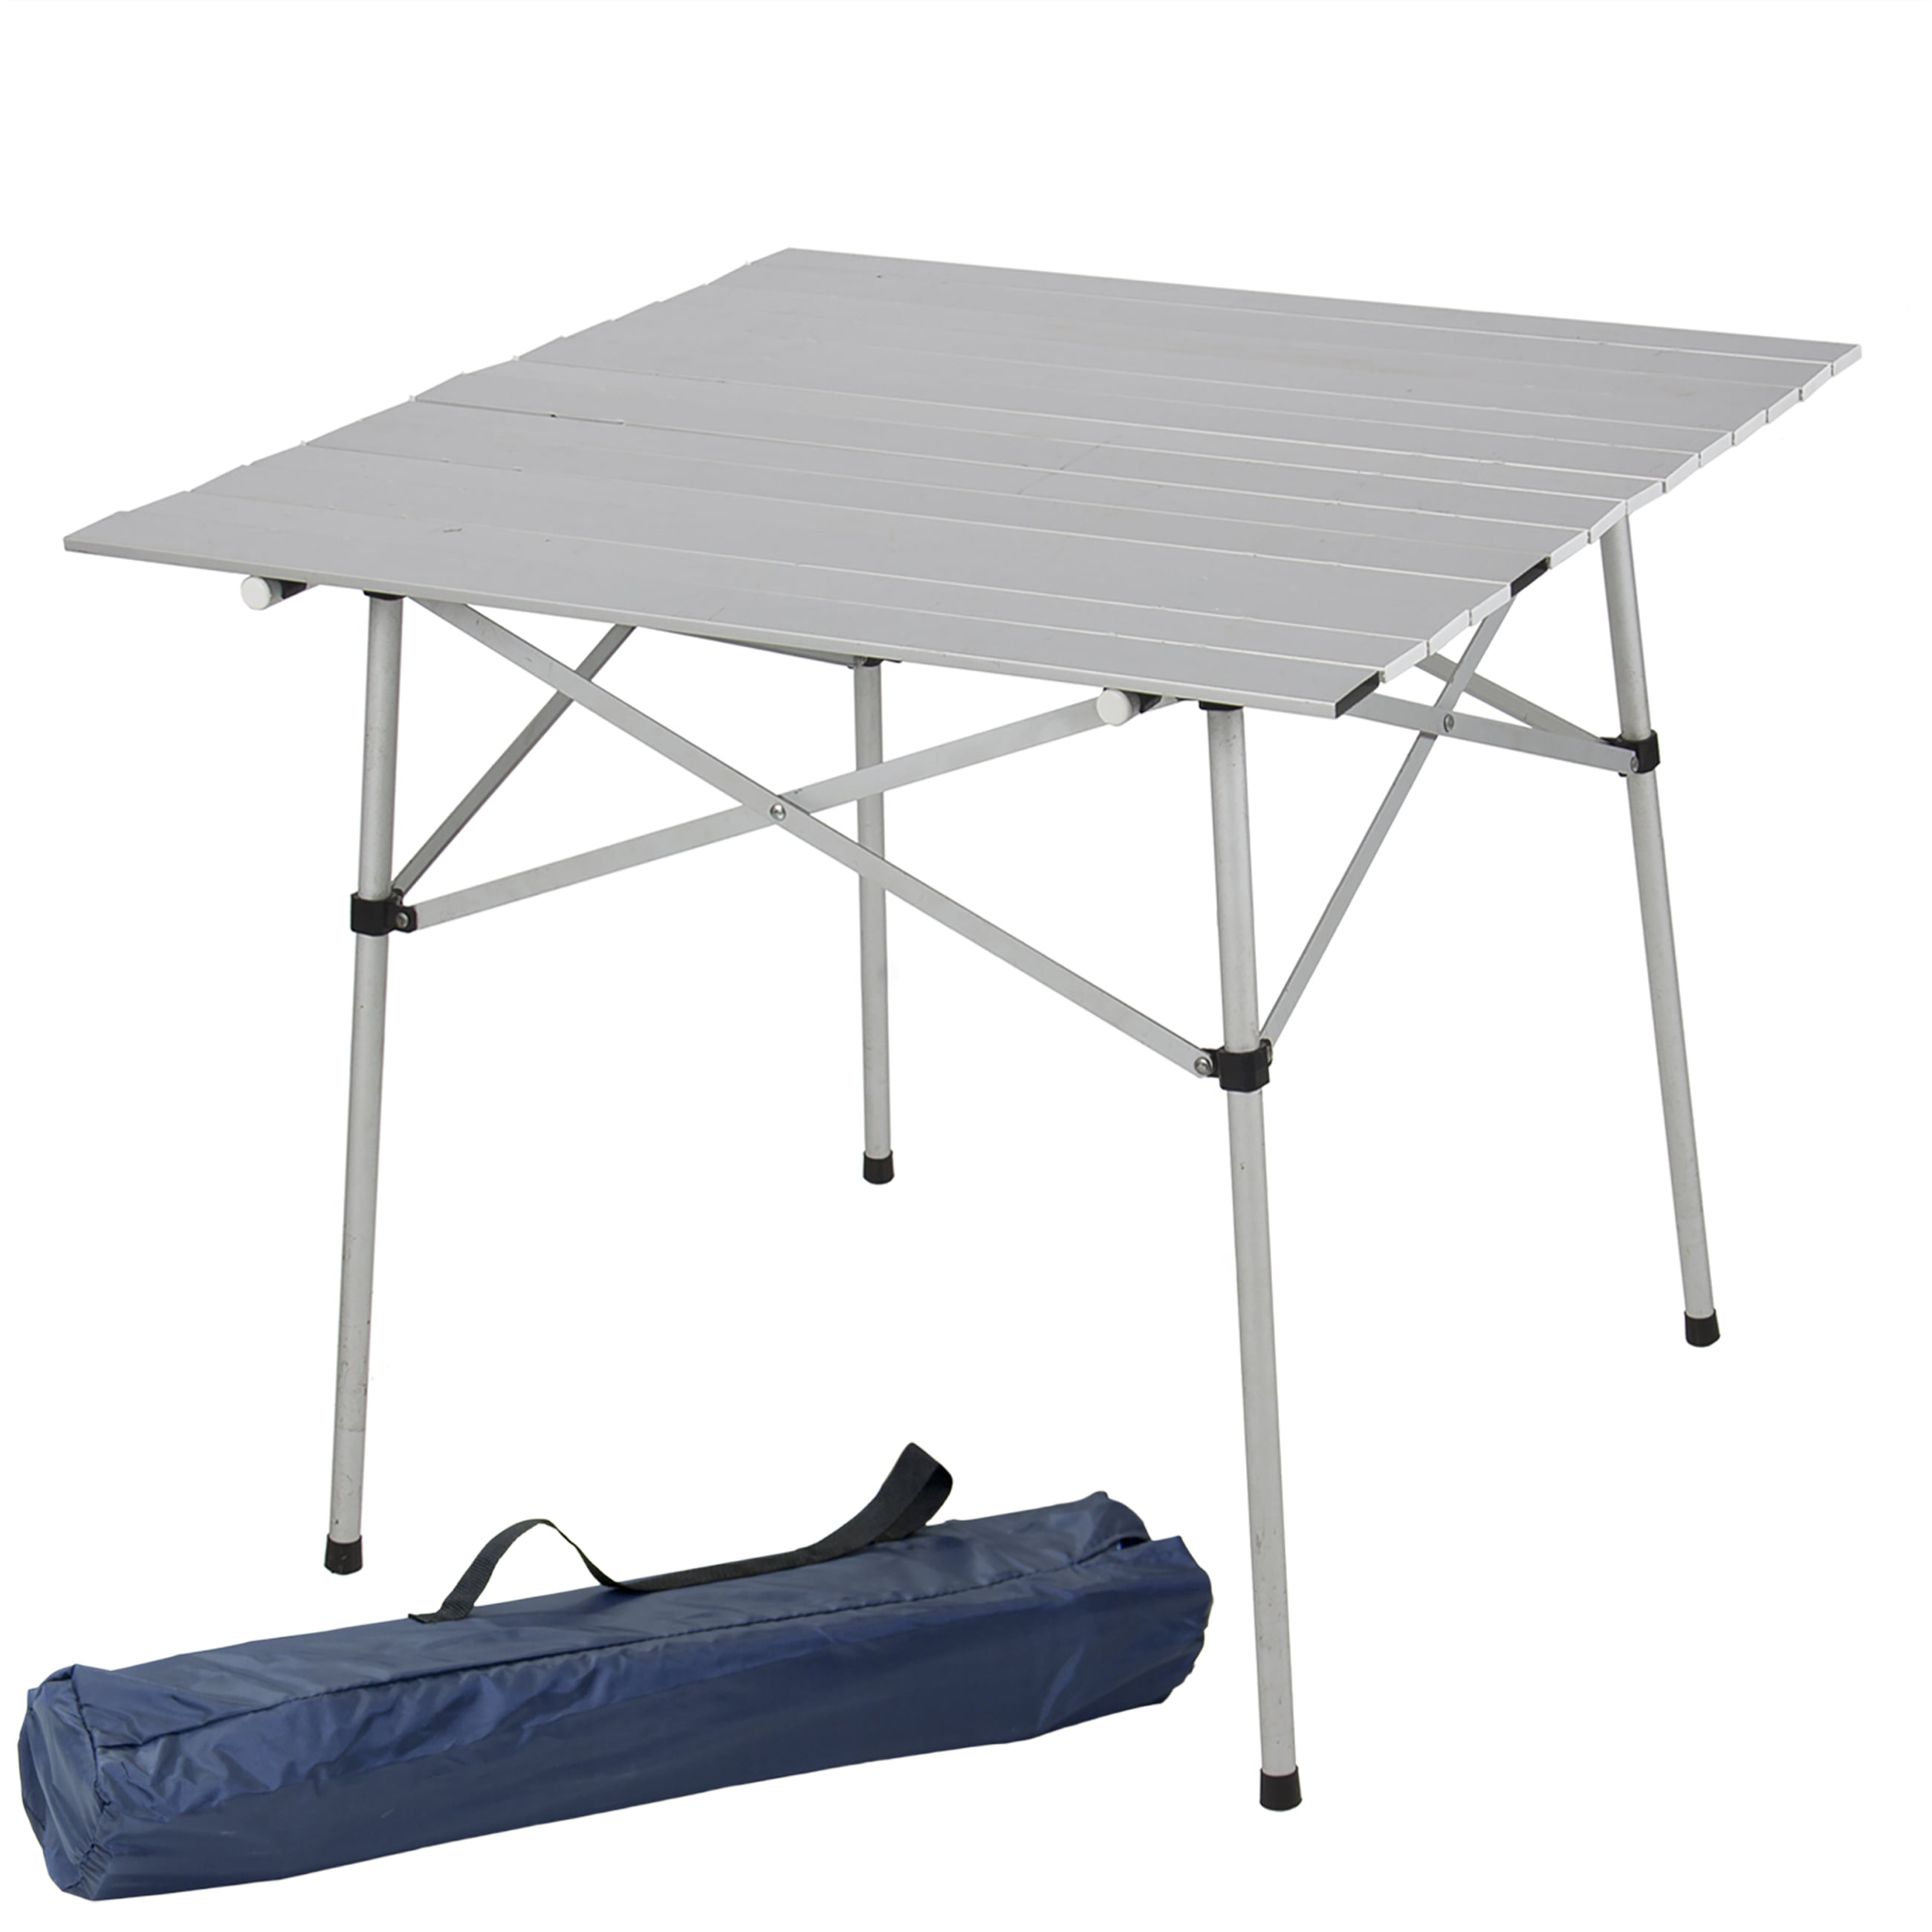 Pleasing Best Choice Products Aluminum Roll Up Table Folding Camping Outdoor Indoor Picnic Table Heavy Duty Walmart Com Pdpeps Interior Chair Design Pdpepsorg